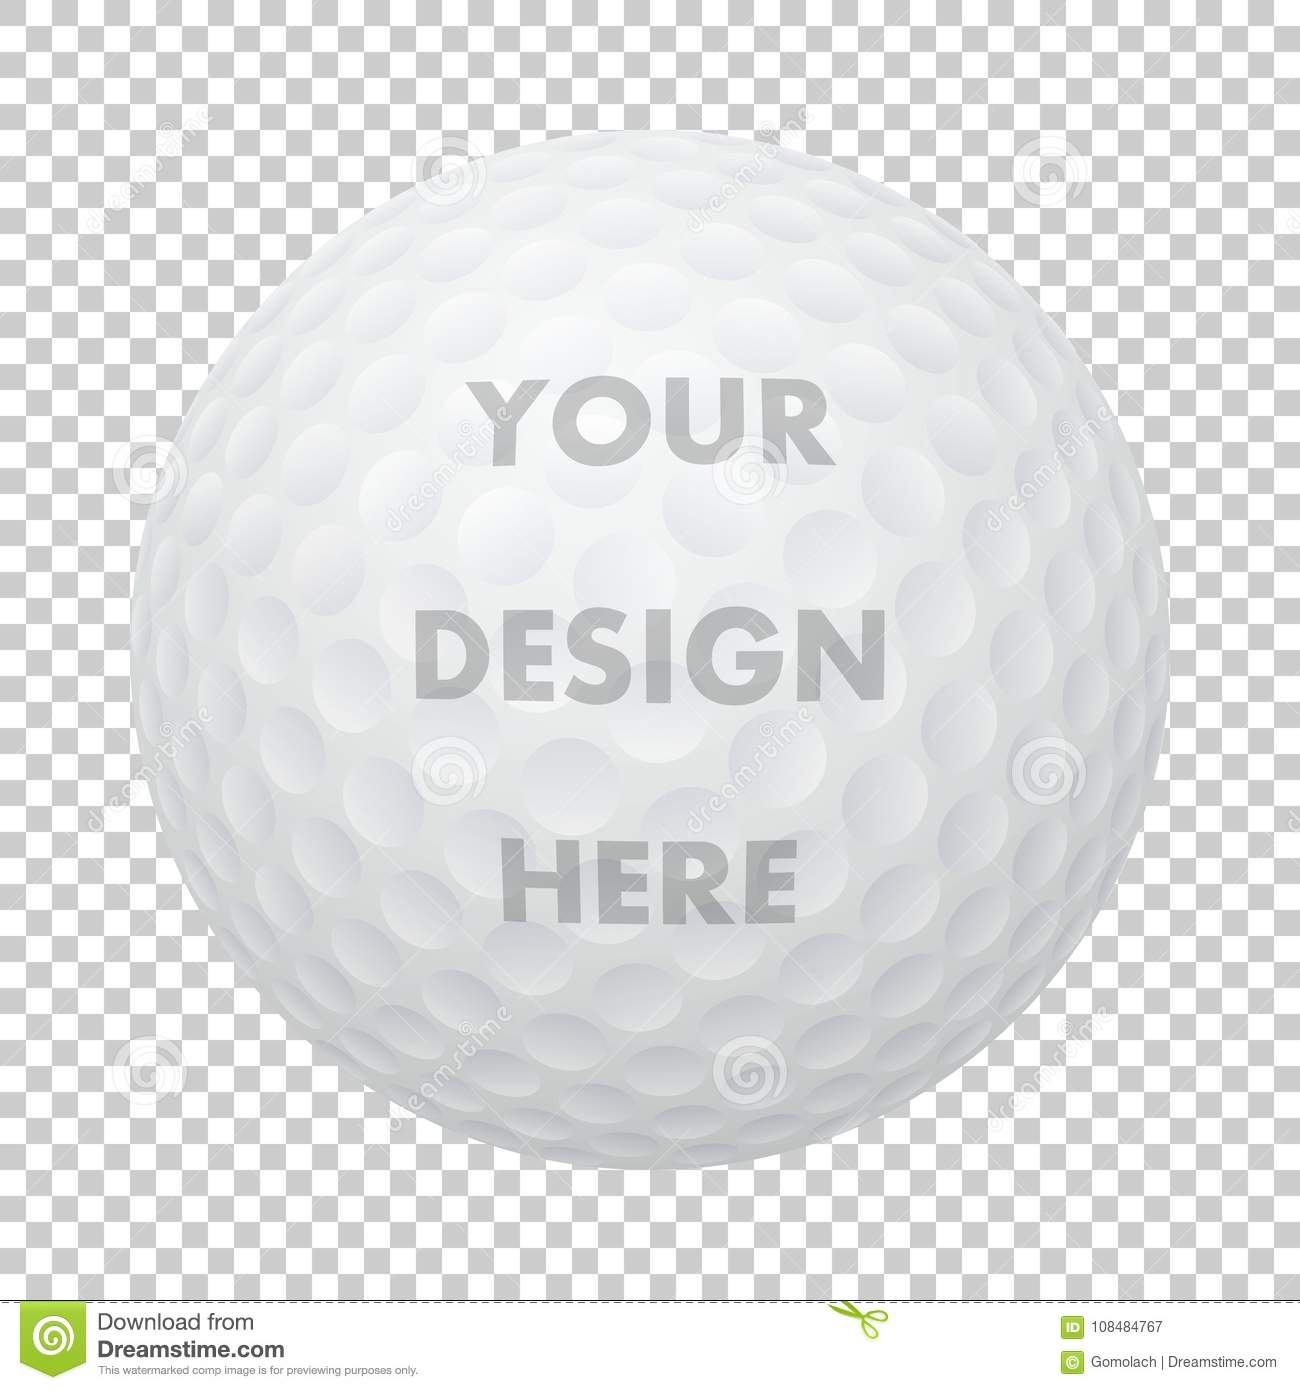 d114668f Vector realistic golf ball icon. Closeup isolated on transparency grid  background. Sports ball design template, mockup for graphics, printing etc.